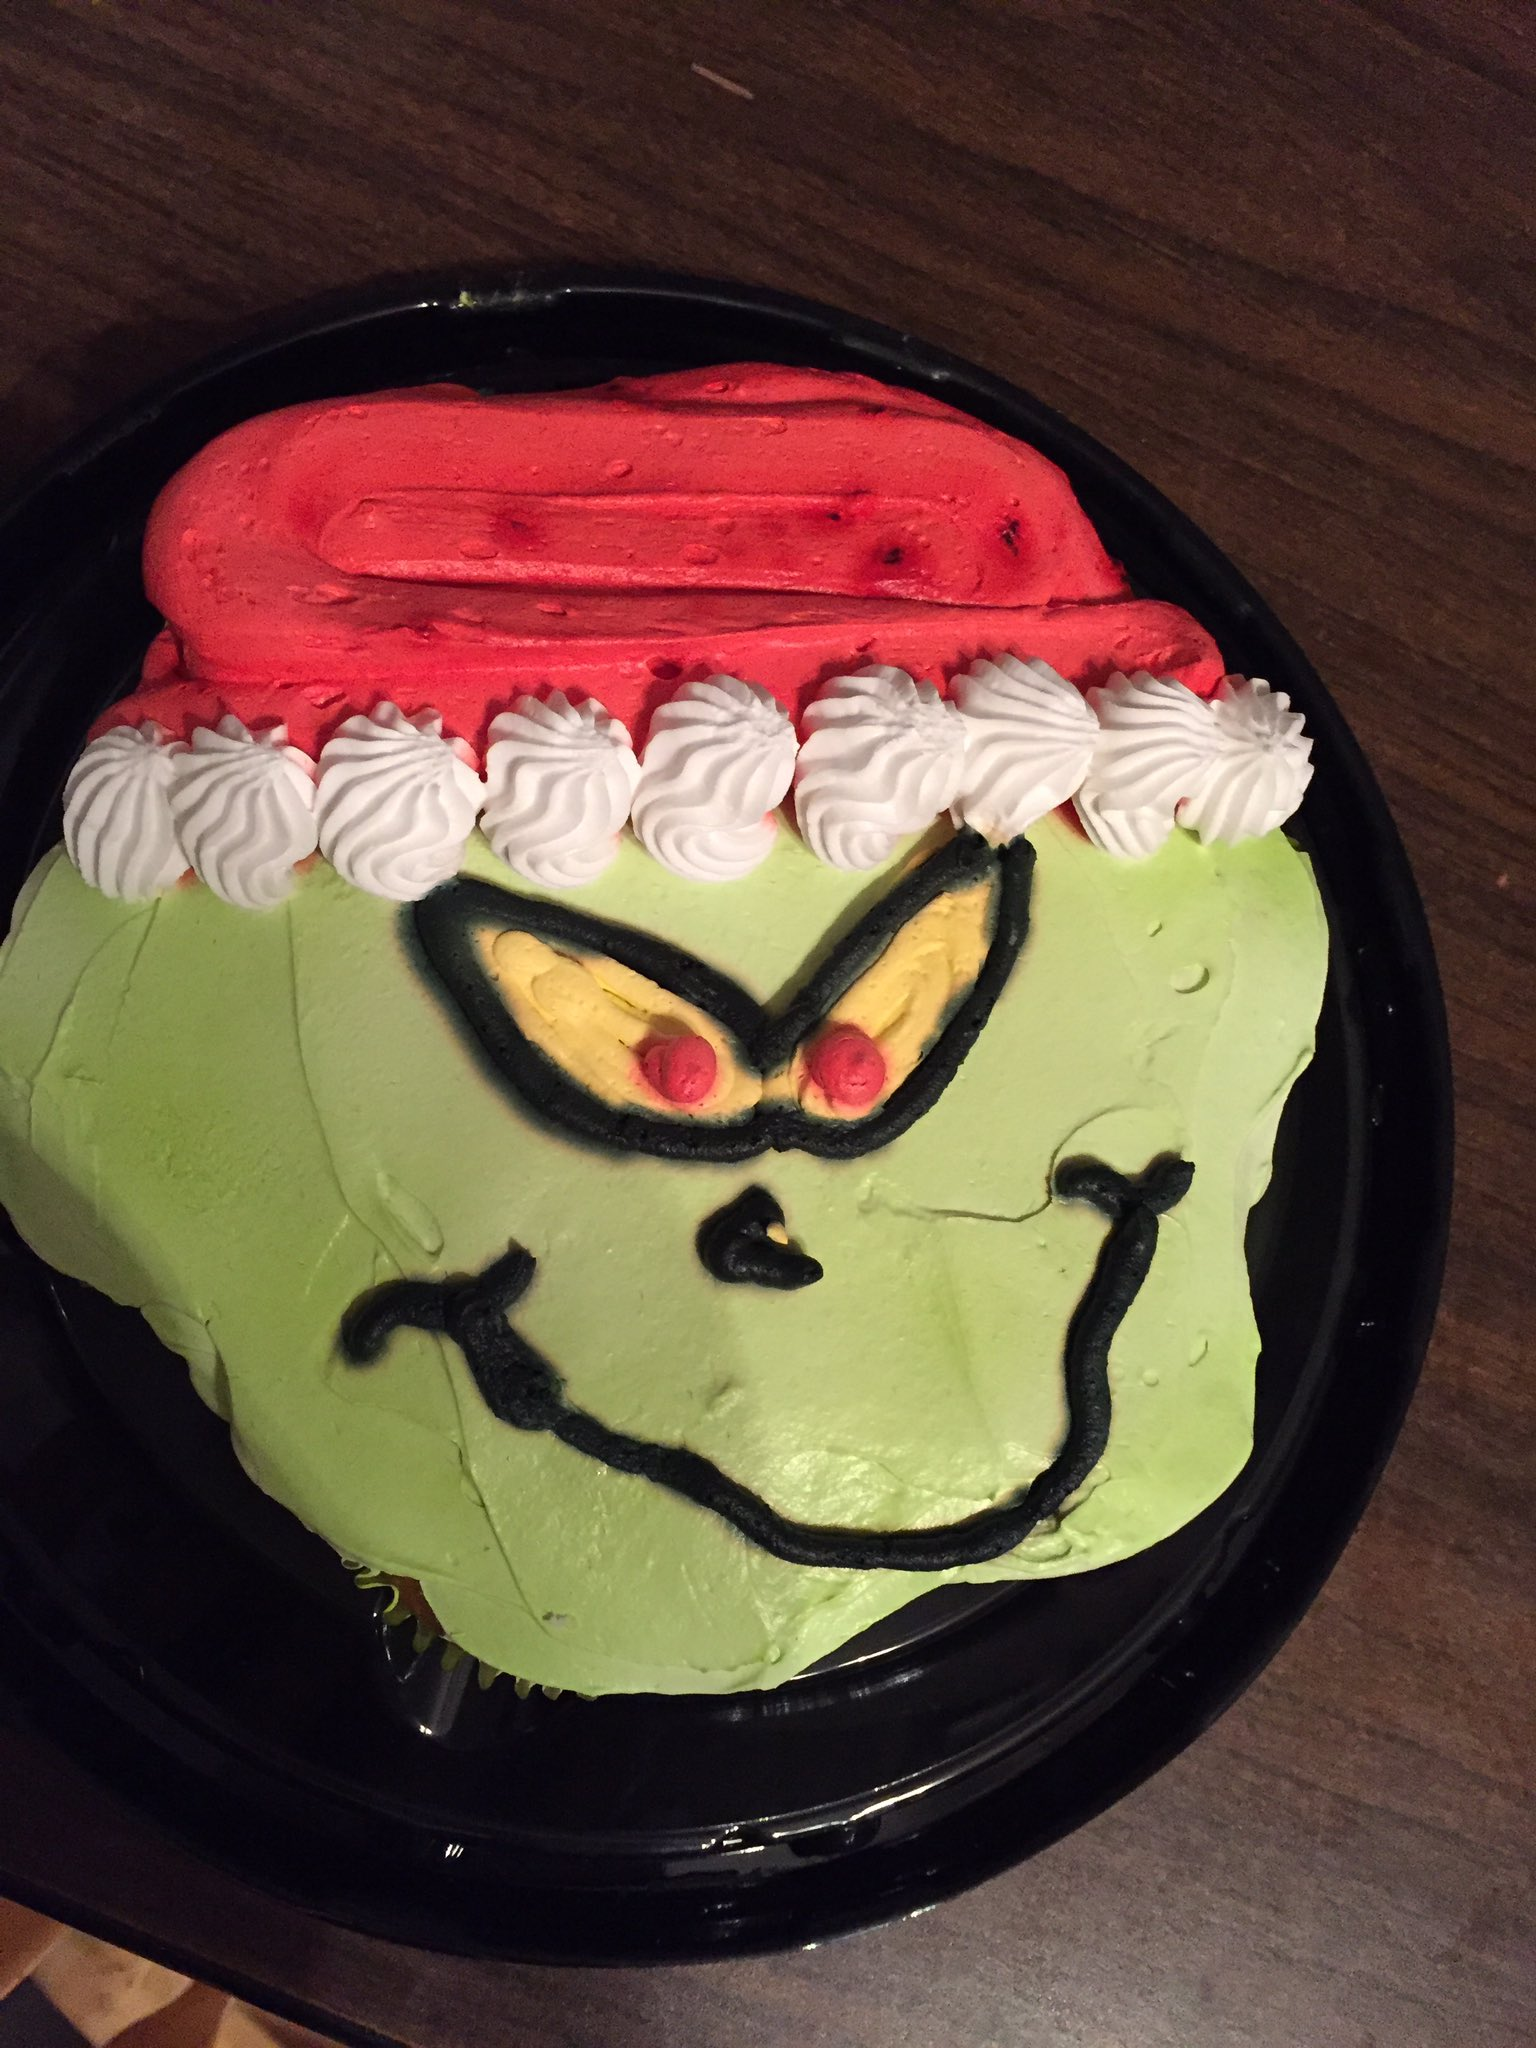 Pleasant Brandi Gutasy On Twitter Picked Up A Grinch Cupcake Cake From Personalised Birthday Cards Veneteletsinfo